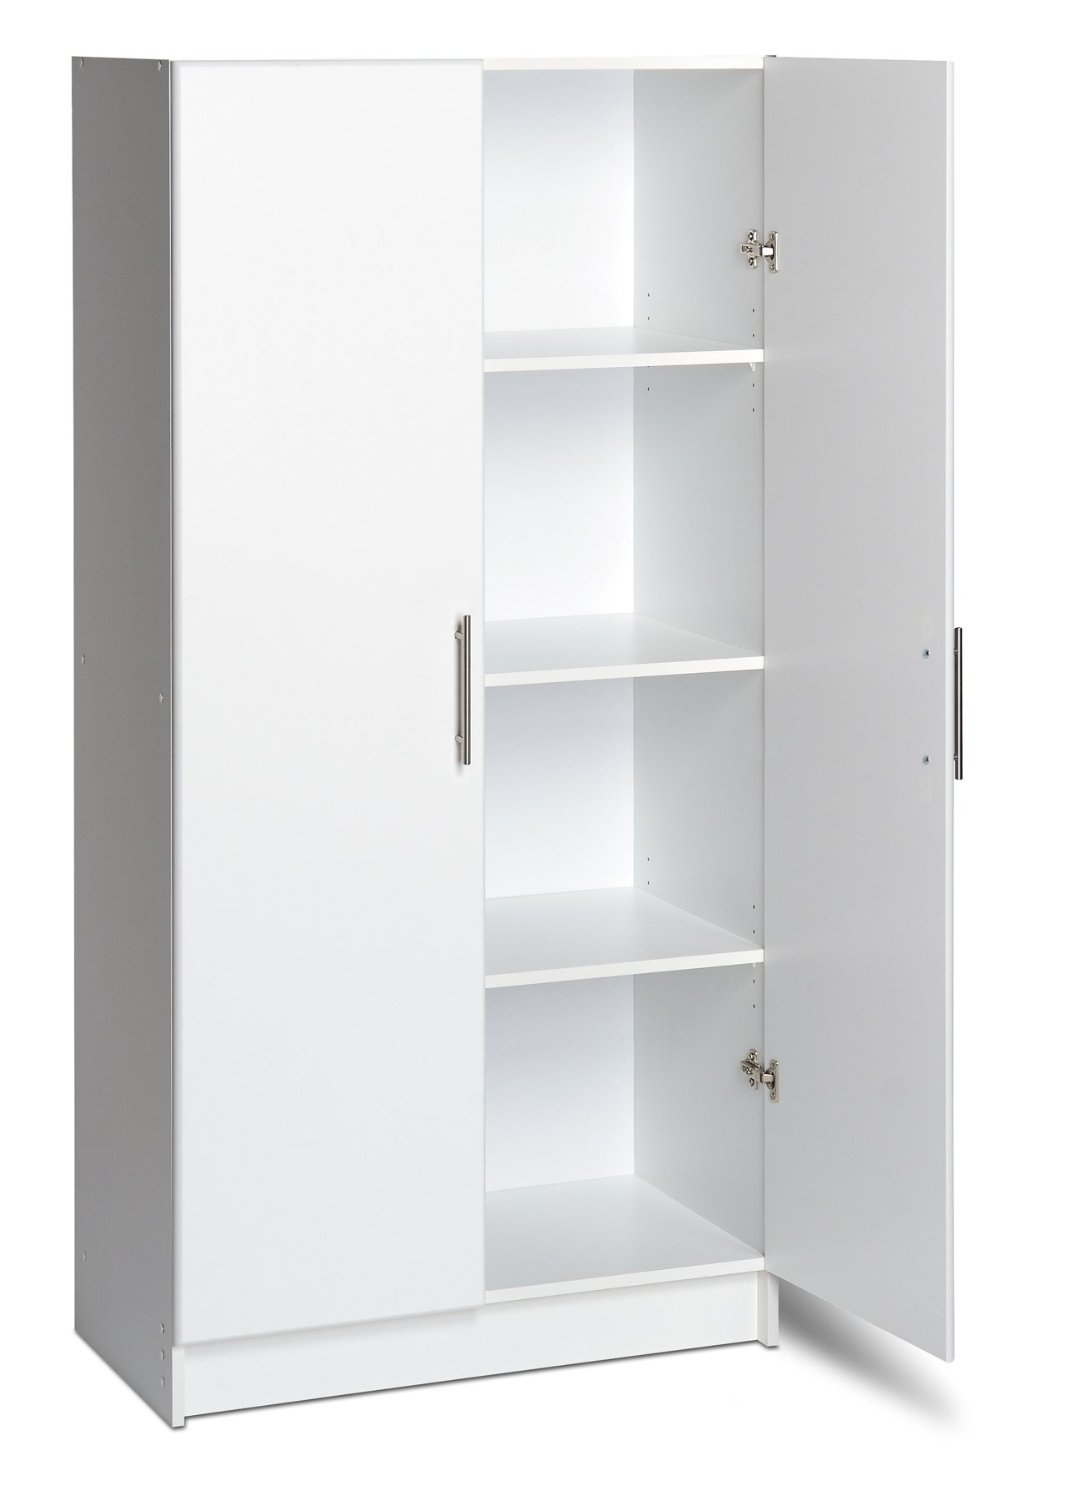 Furniture Elegant Design Of Storage Needs With Freestanding Throughout Free Standing White Shelves (#7 of 15)